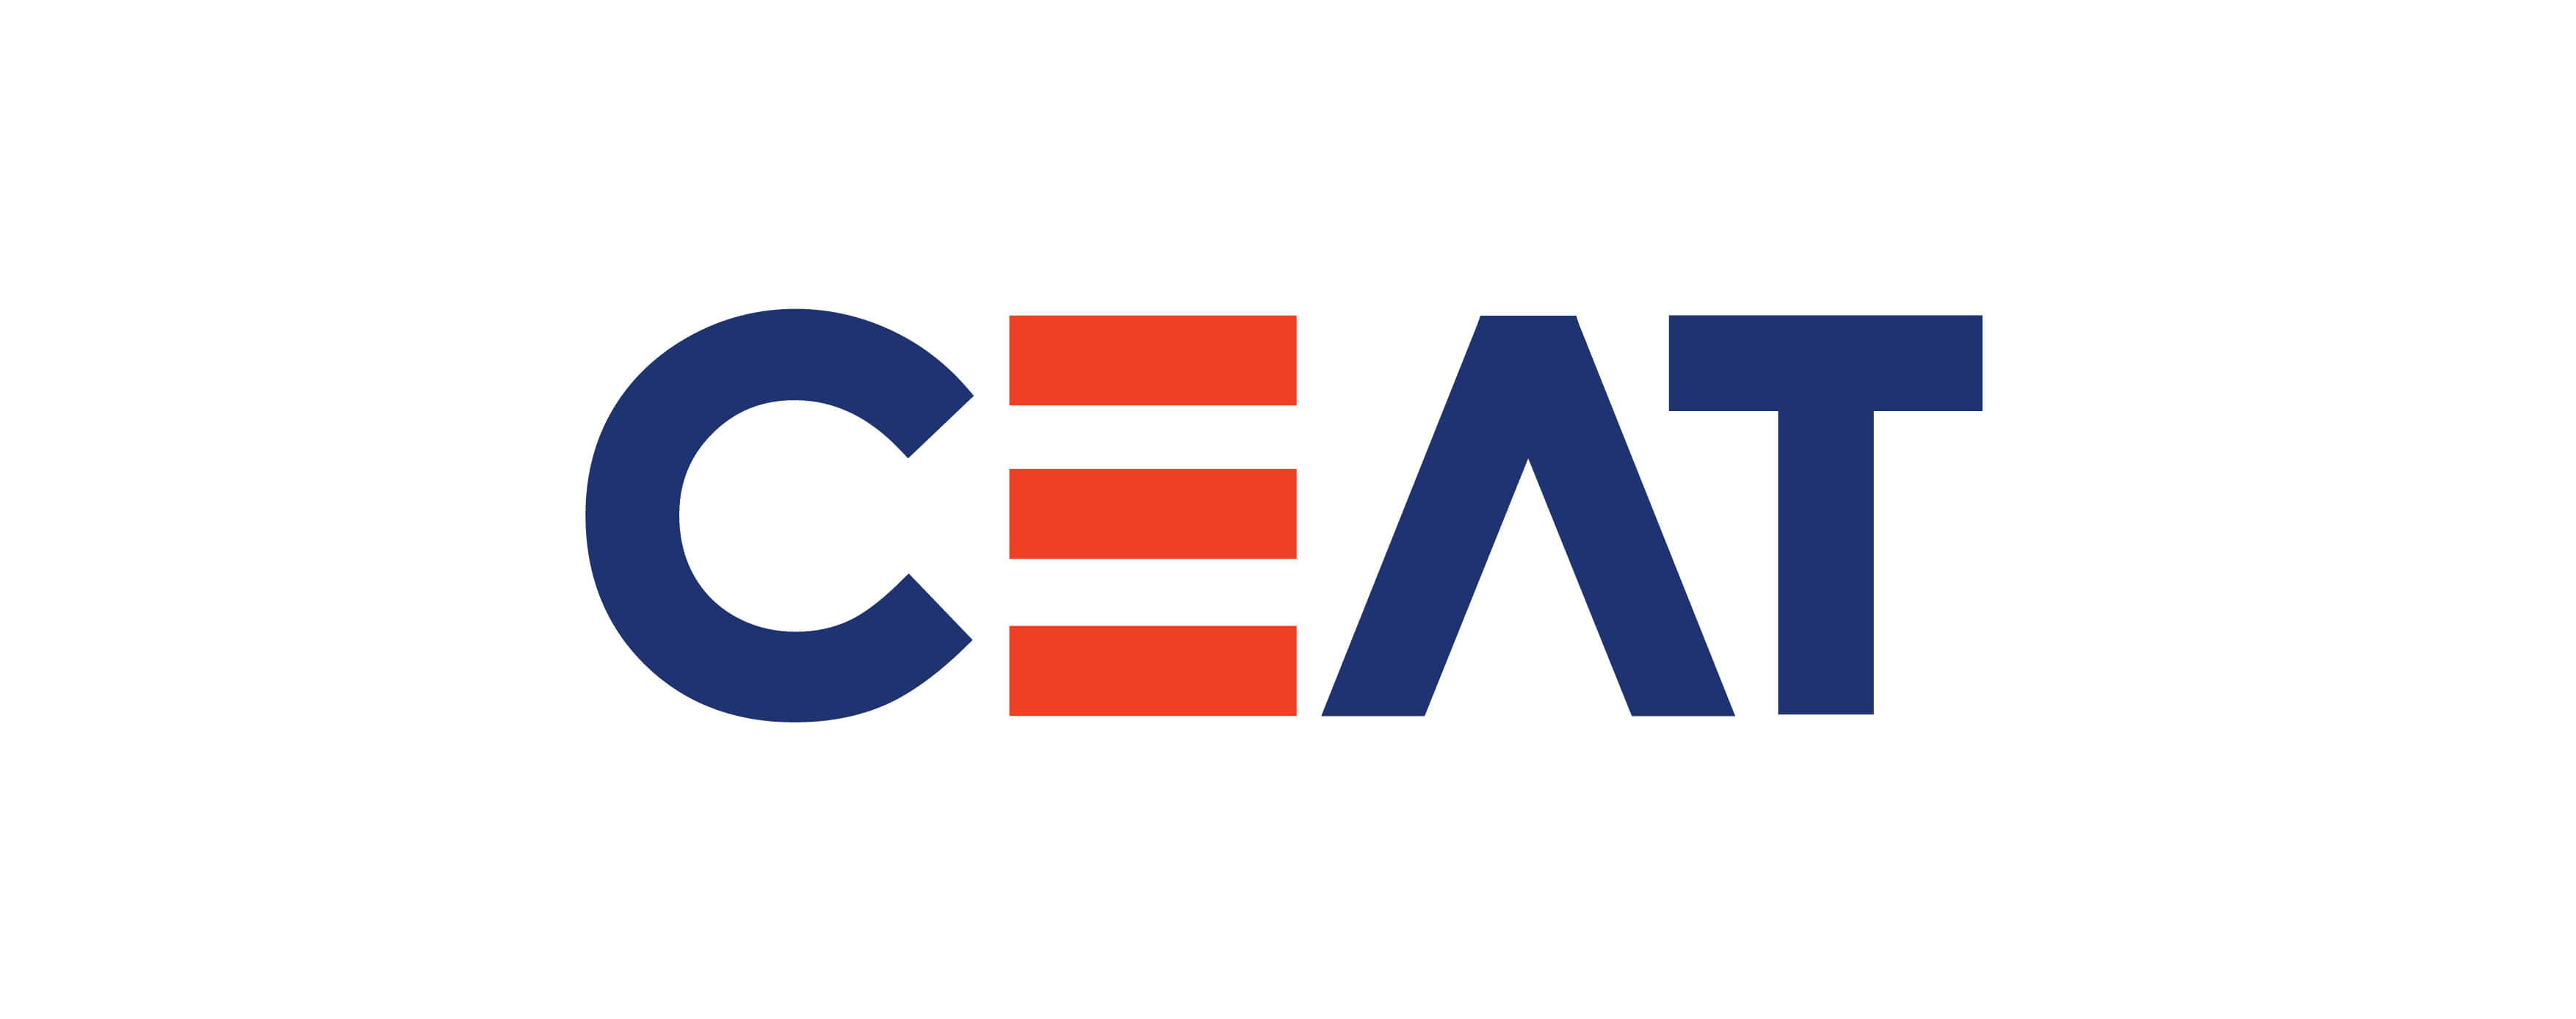 Ceat To Invest Rs 1 800 Crore To Increase Production Open